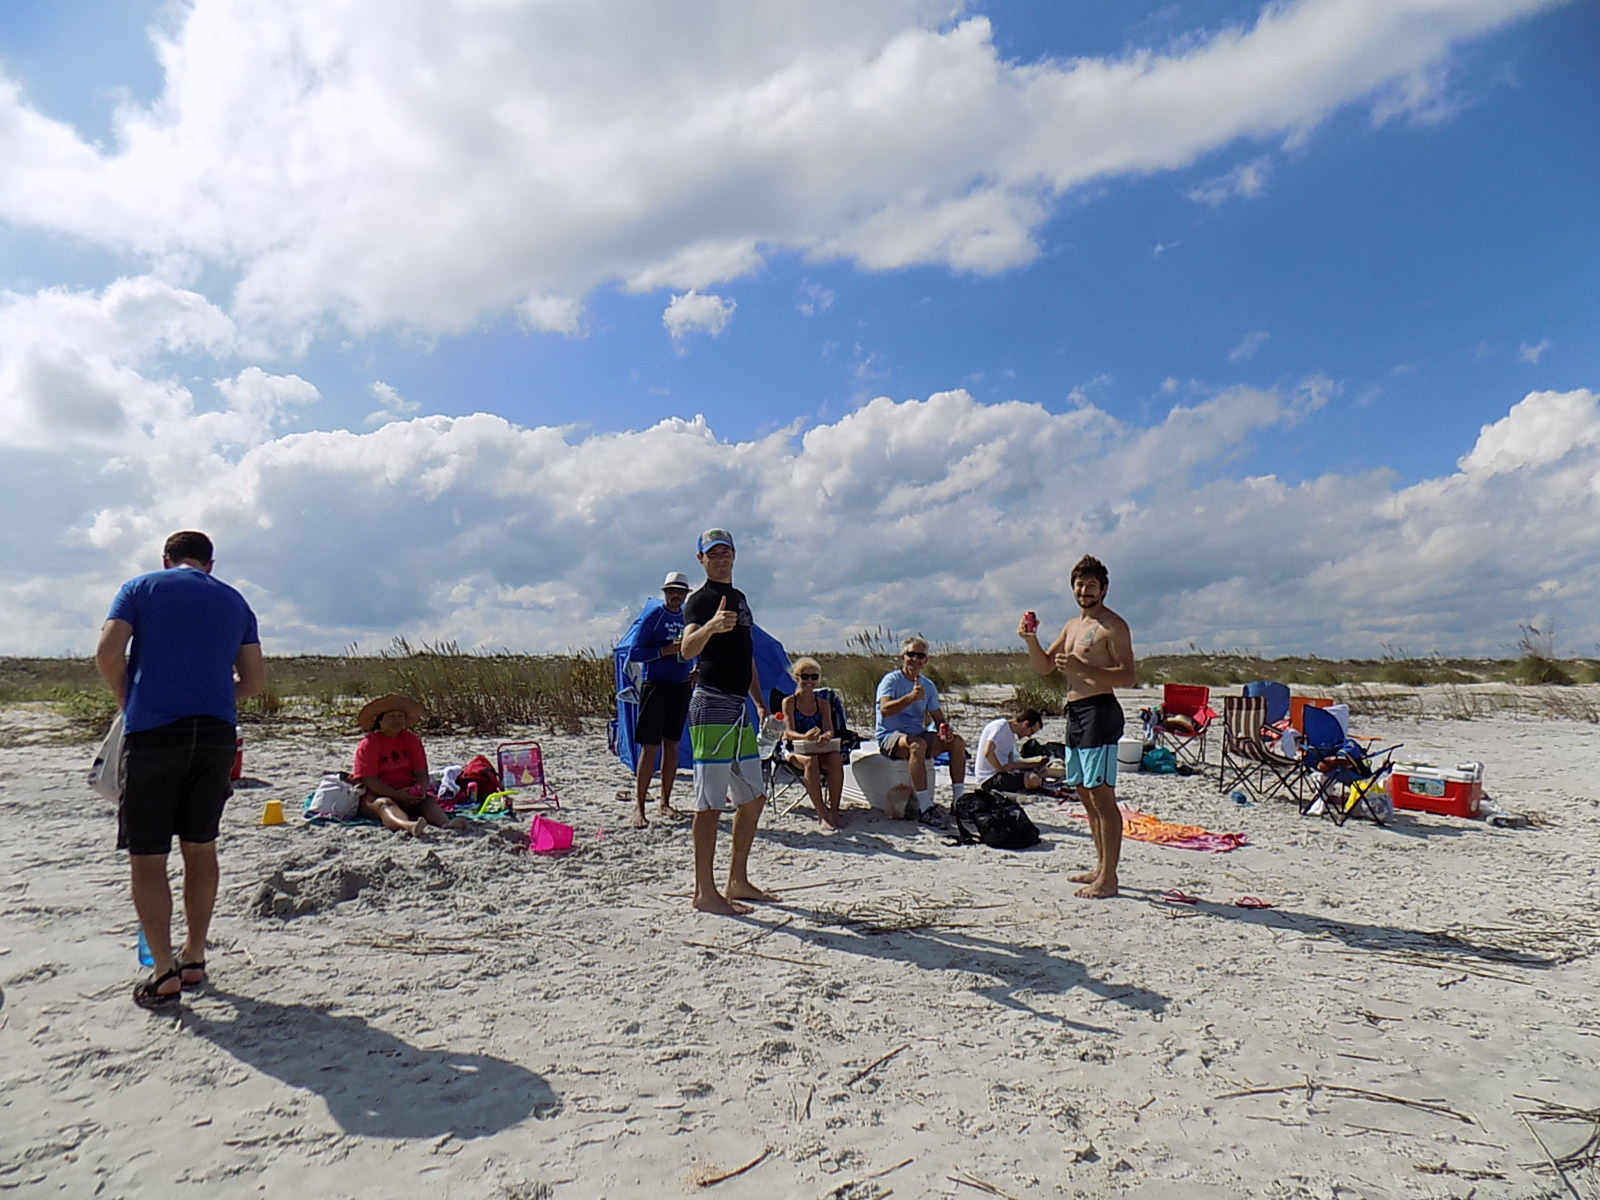 Soltis lab at the beach